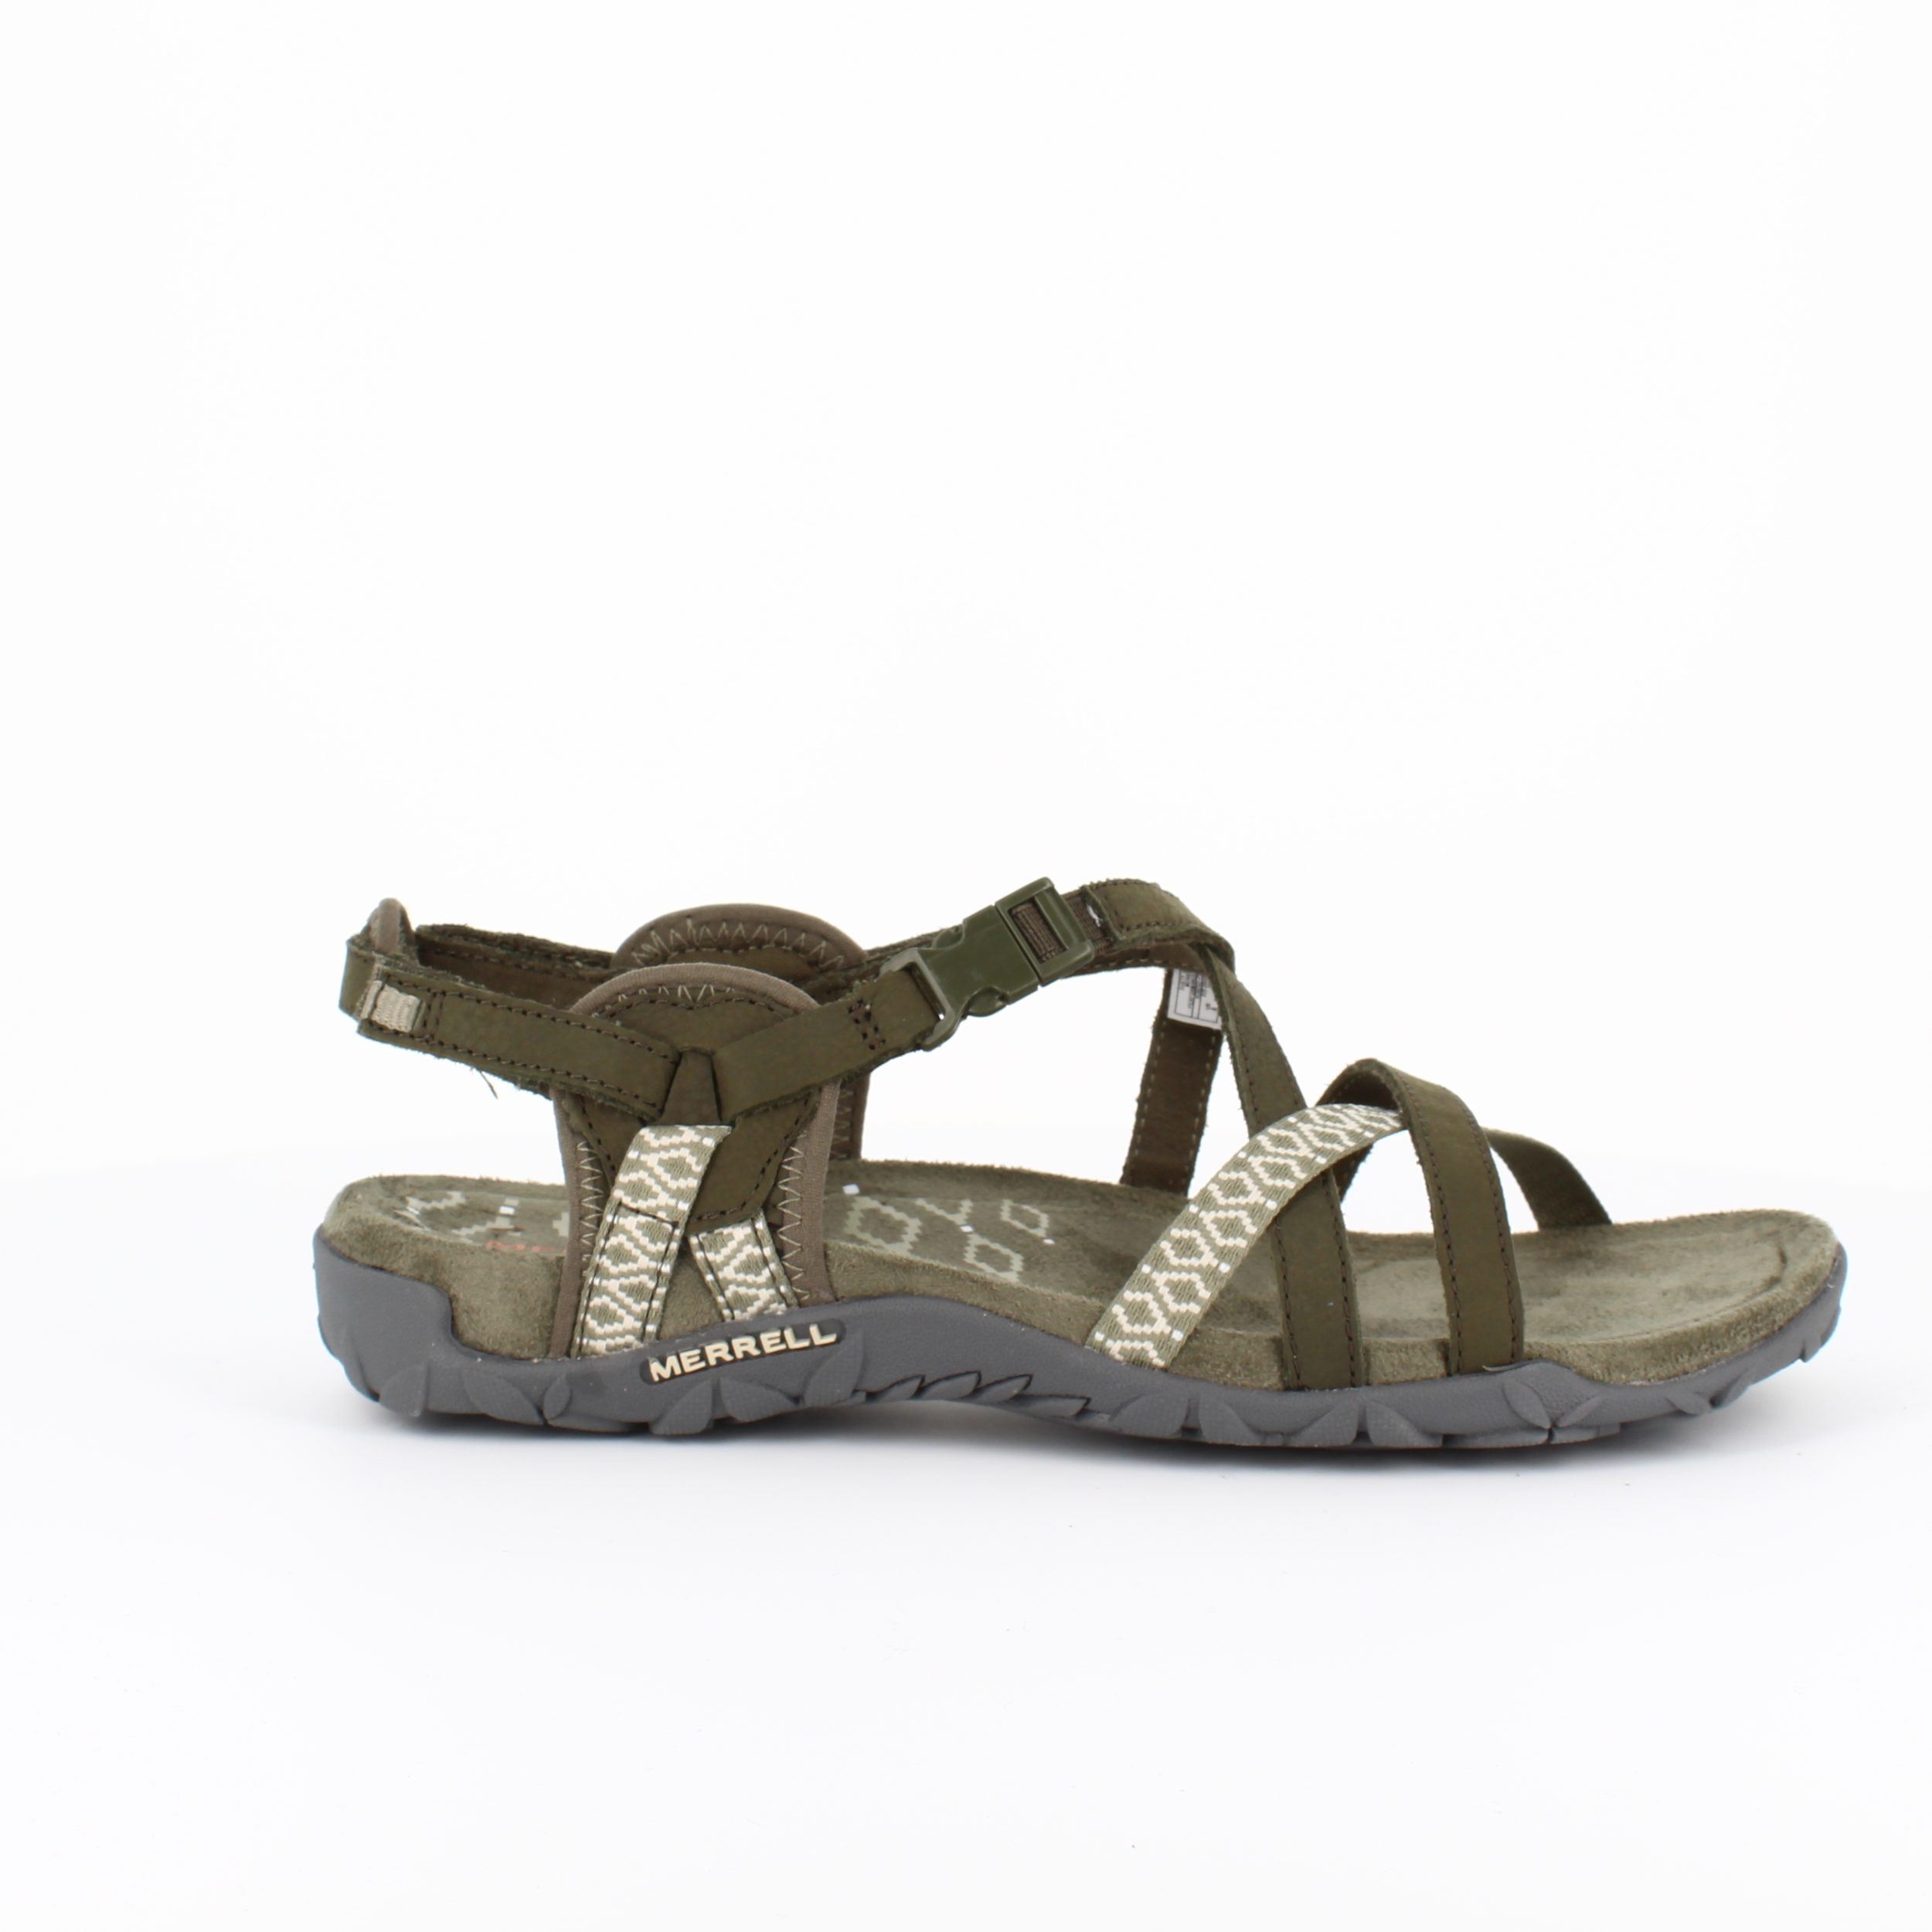 Image of   Olivenfarvet sandal, Terran Lattice sandal fra Merrell - 37